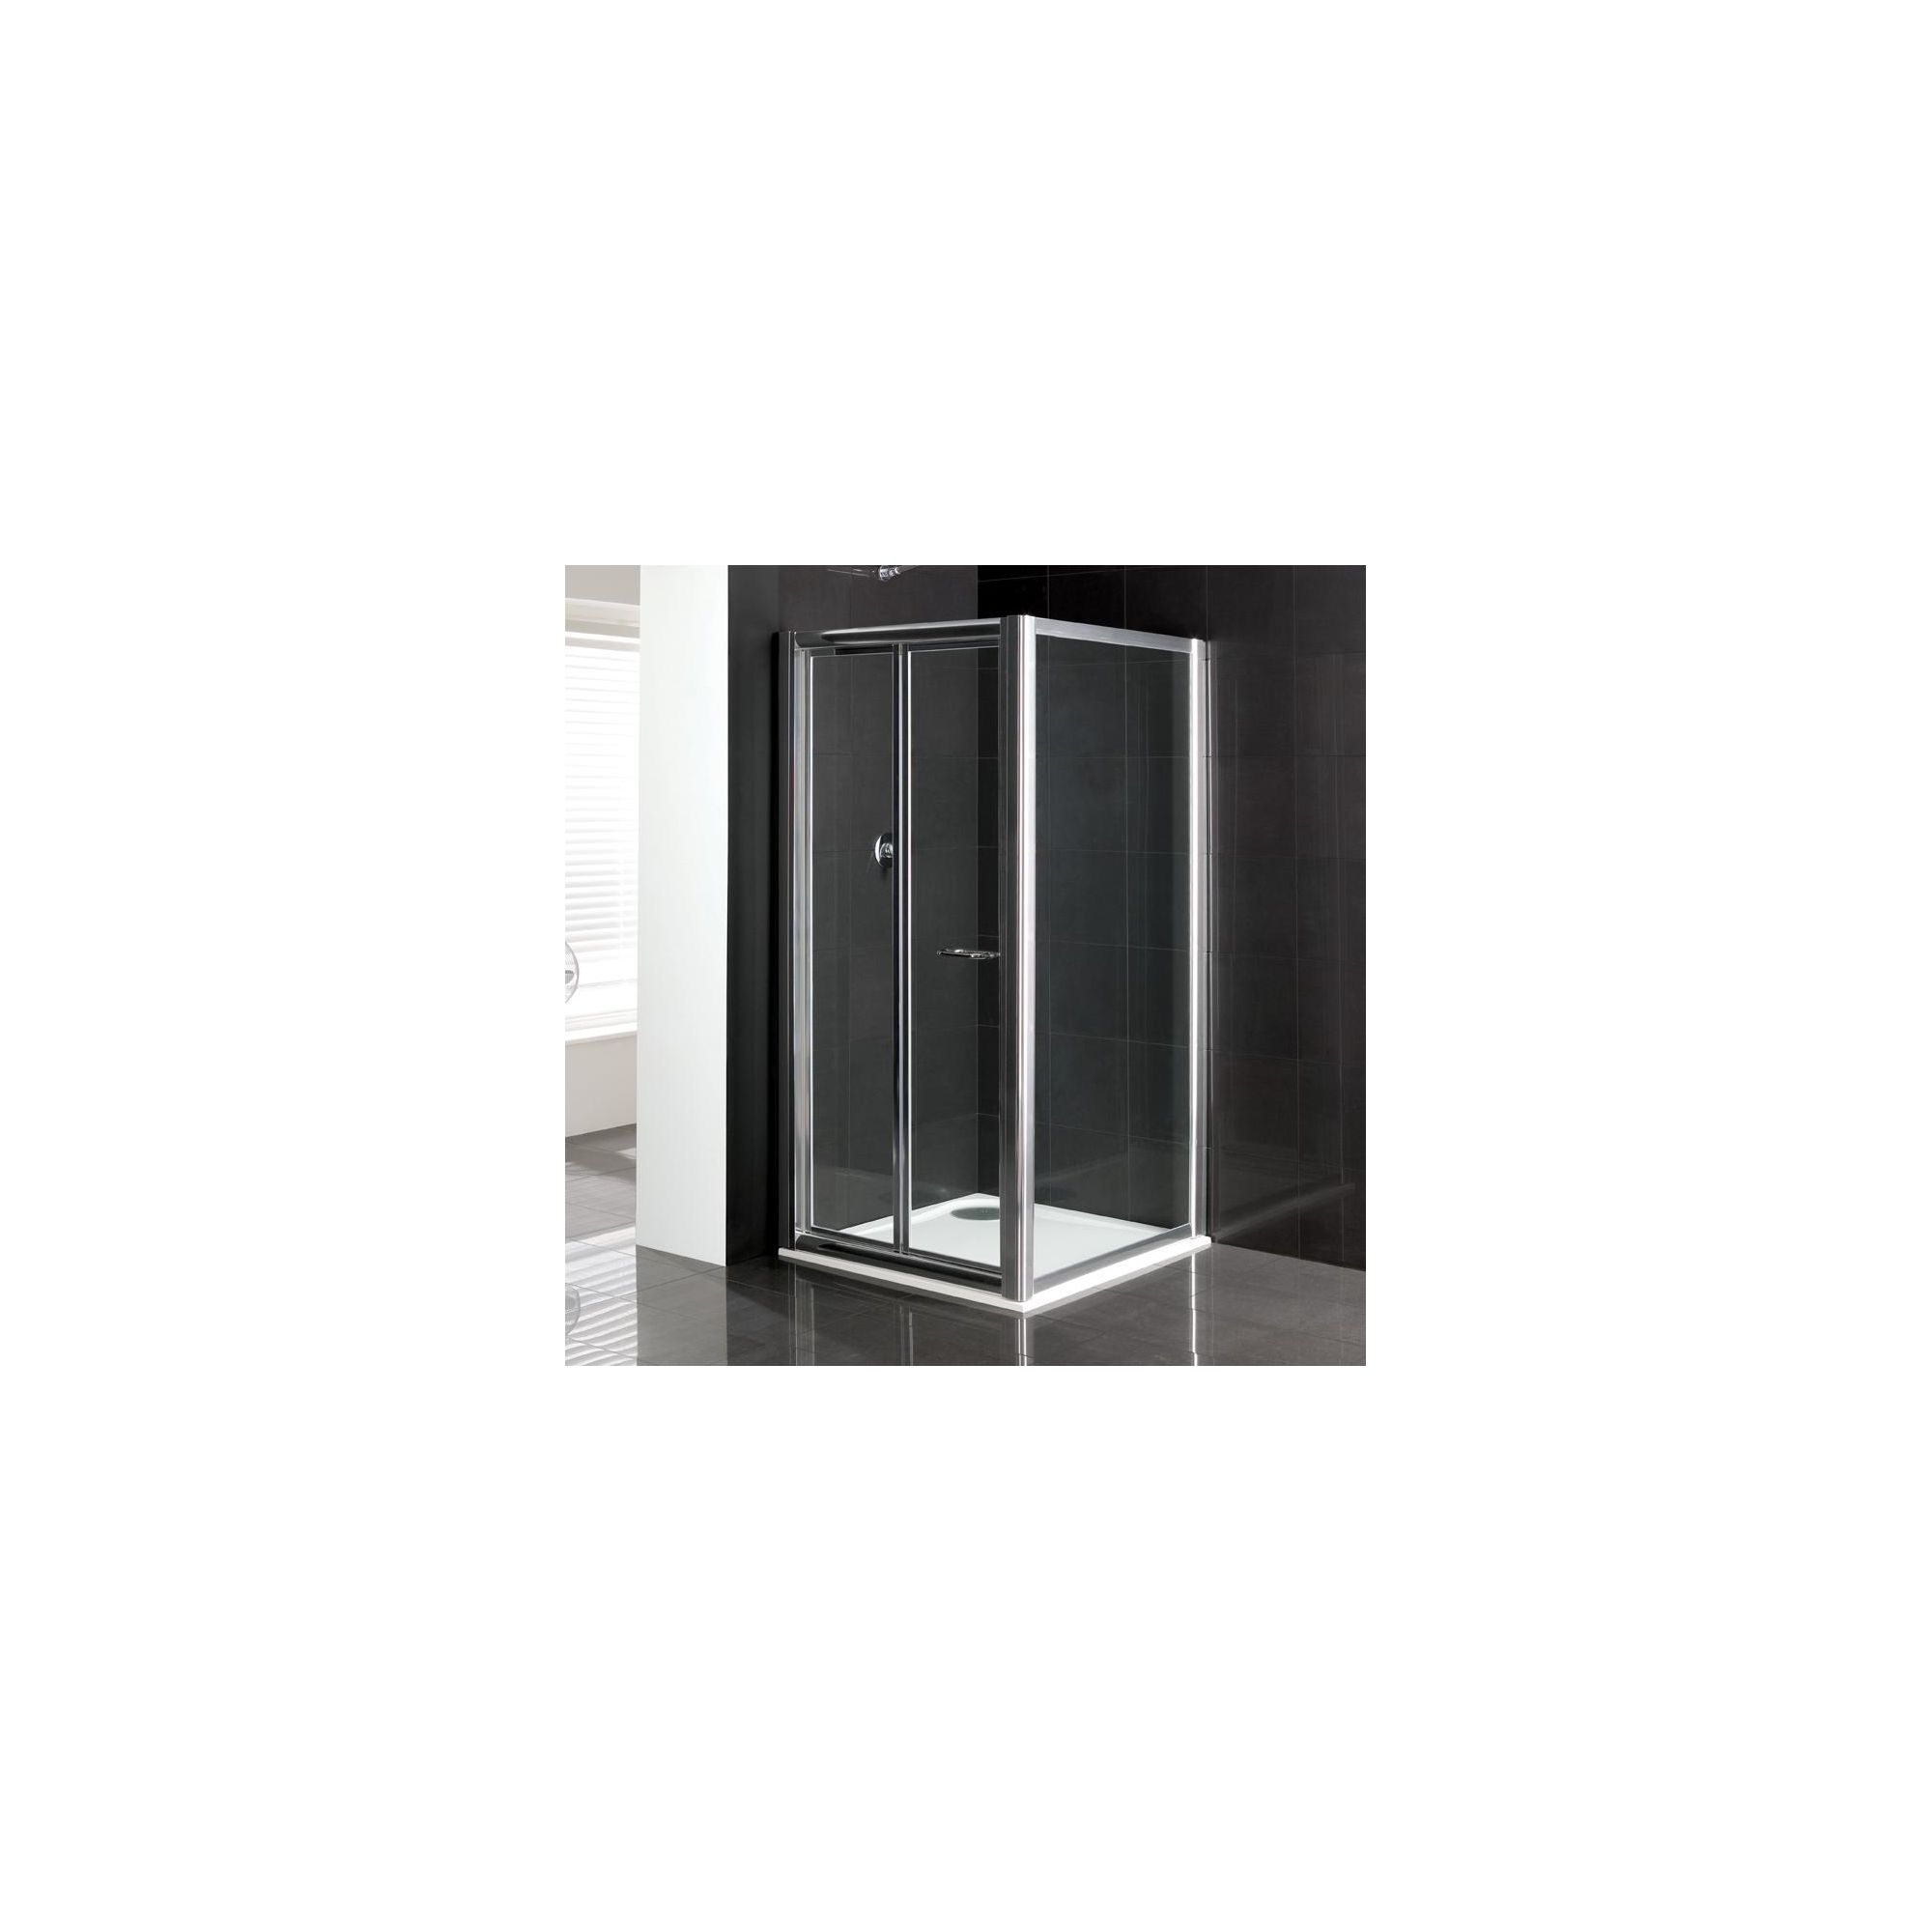 Duchy Elite Silver Bi-Fold Door Shower Enclosure with Towel Rail, 800mm x 800mm, Standard Tray, 6mm Glass at Tescos Direct